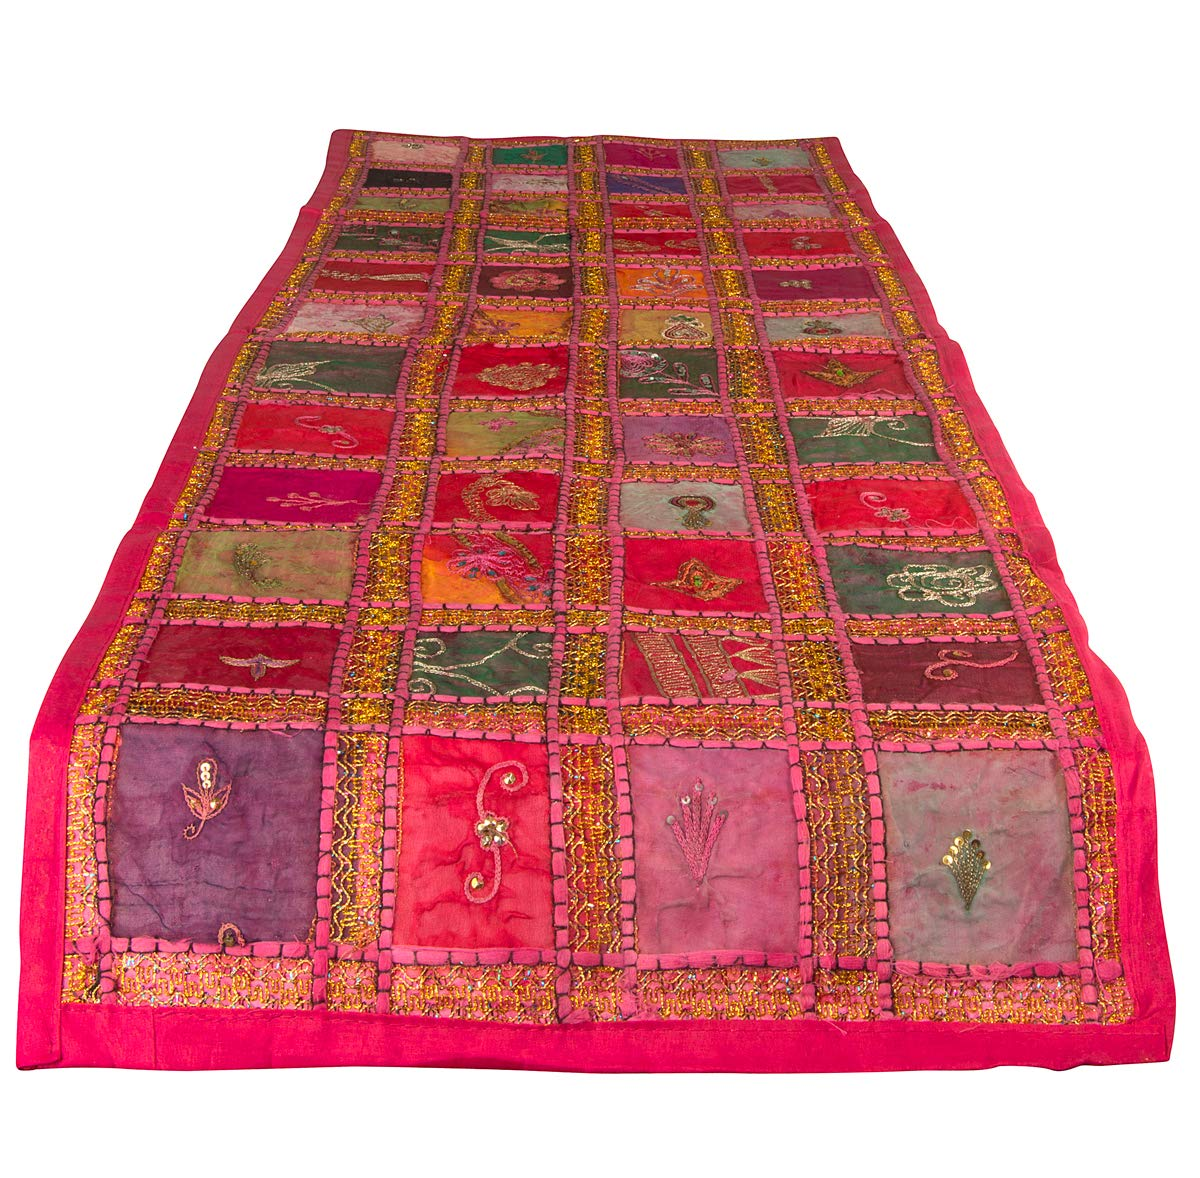 """Tribe Azure Fair Trade Pink Table Runner Cotton 18"""" x 58"""" Handmade Embroidered Boho Bohemian Colorful Patchwork Indian Decoration Reception Party Wedding Decor Tapestry"""